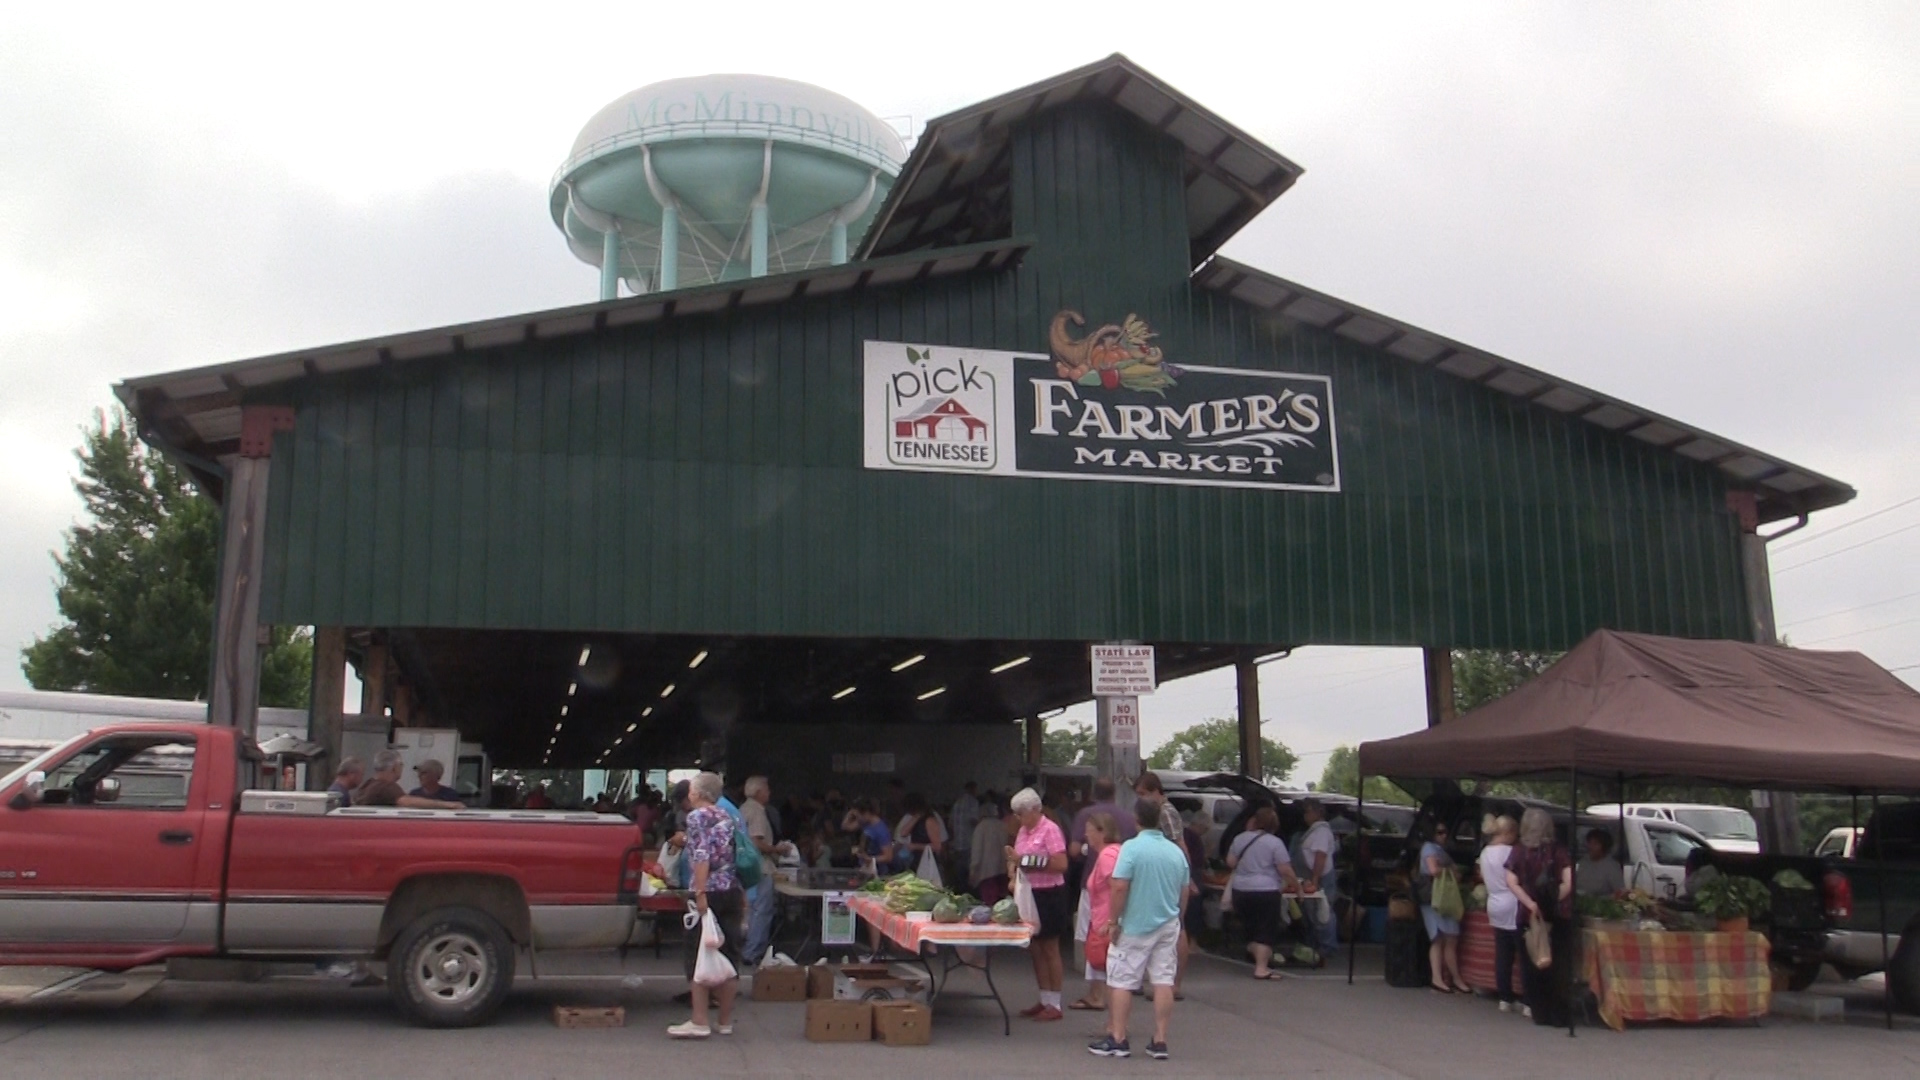 VIDEO: A visit to the Warren County Farmer's Market